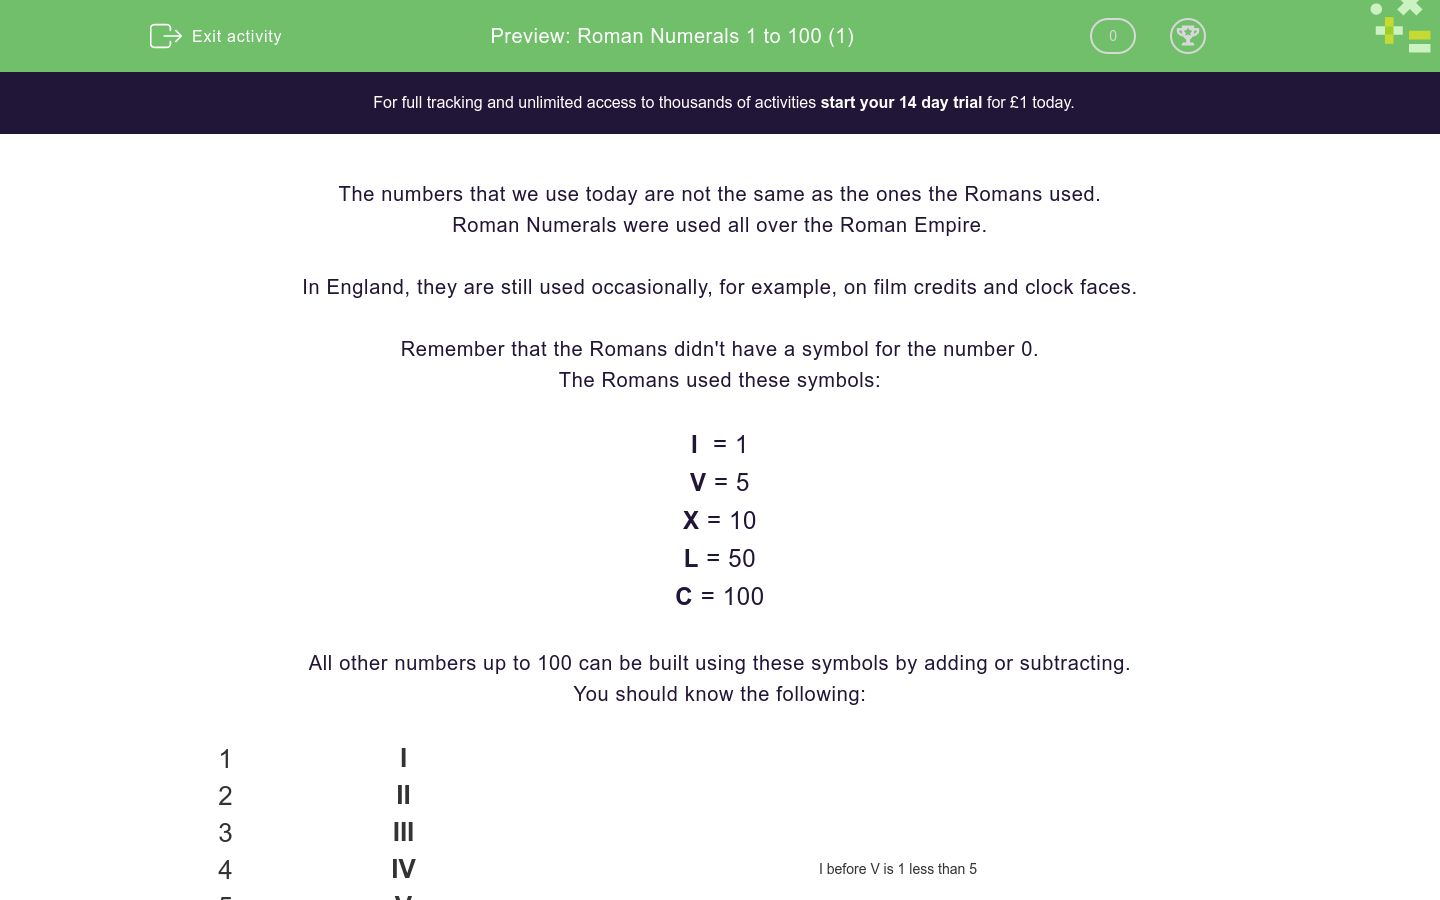 'Roman Numerals 1 to 100 (1)' worksheet